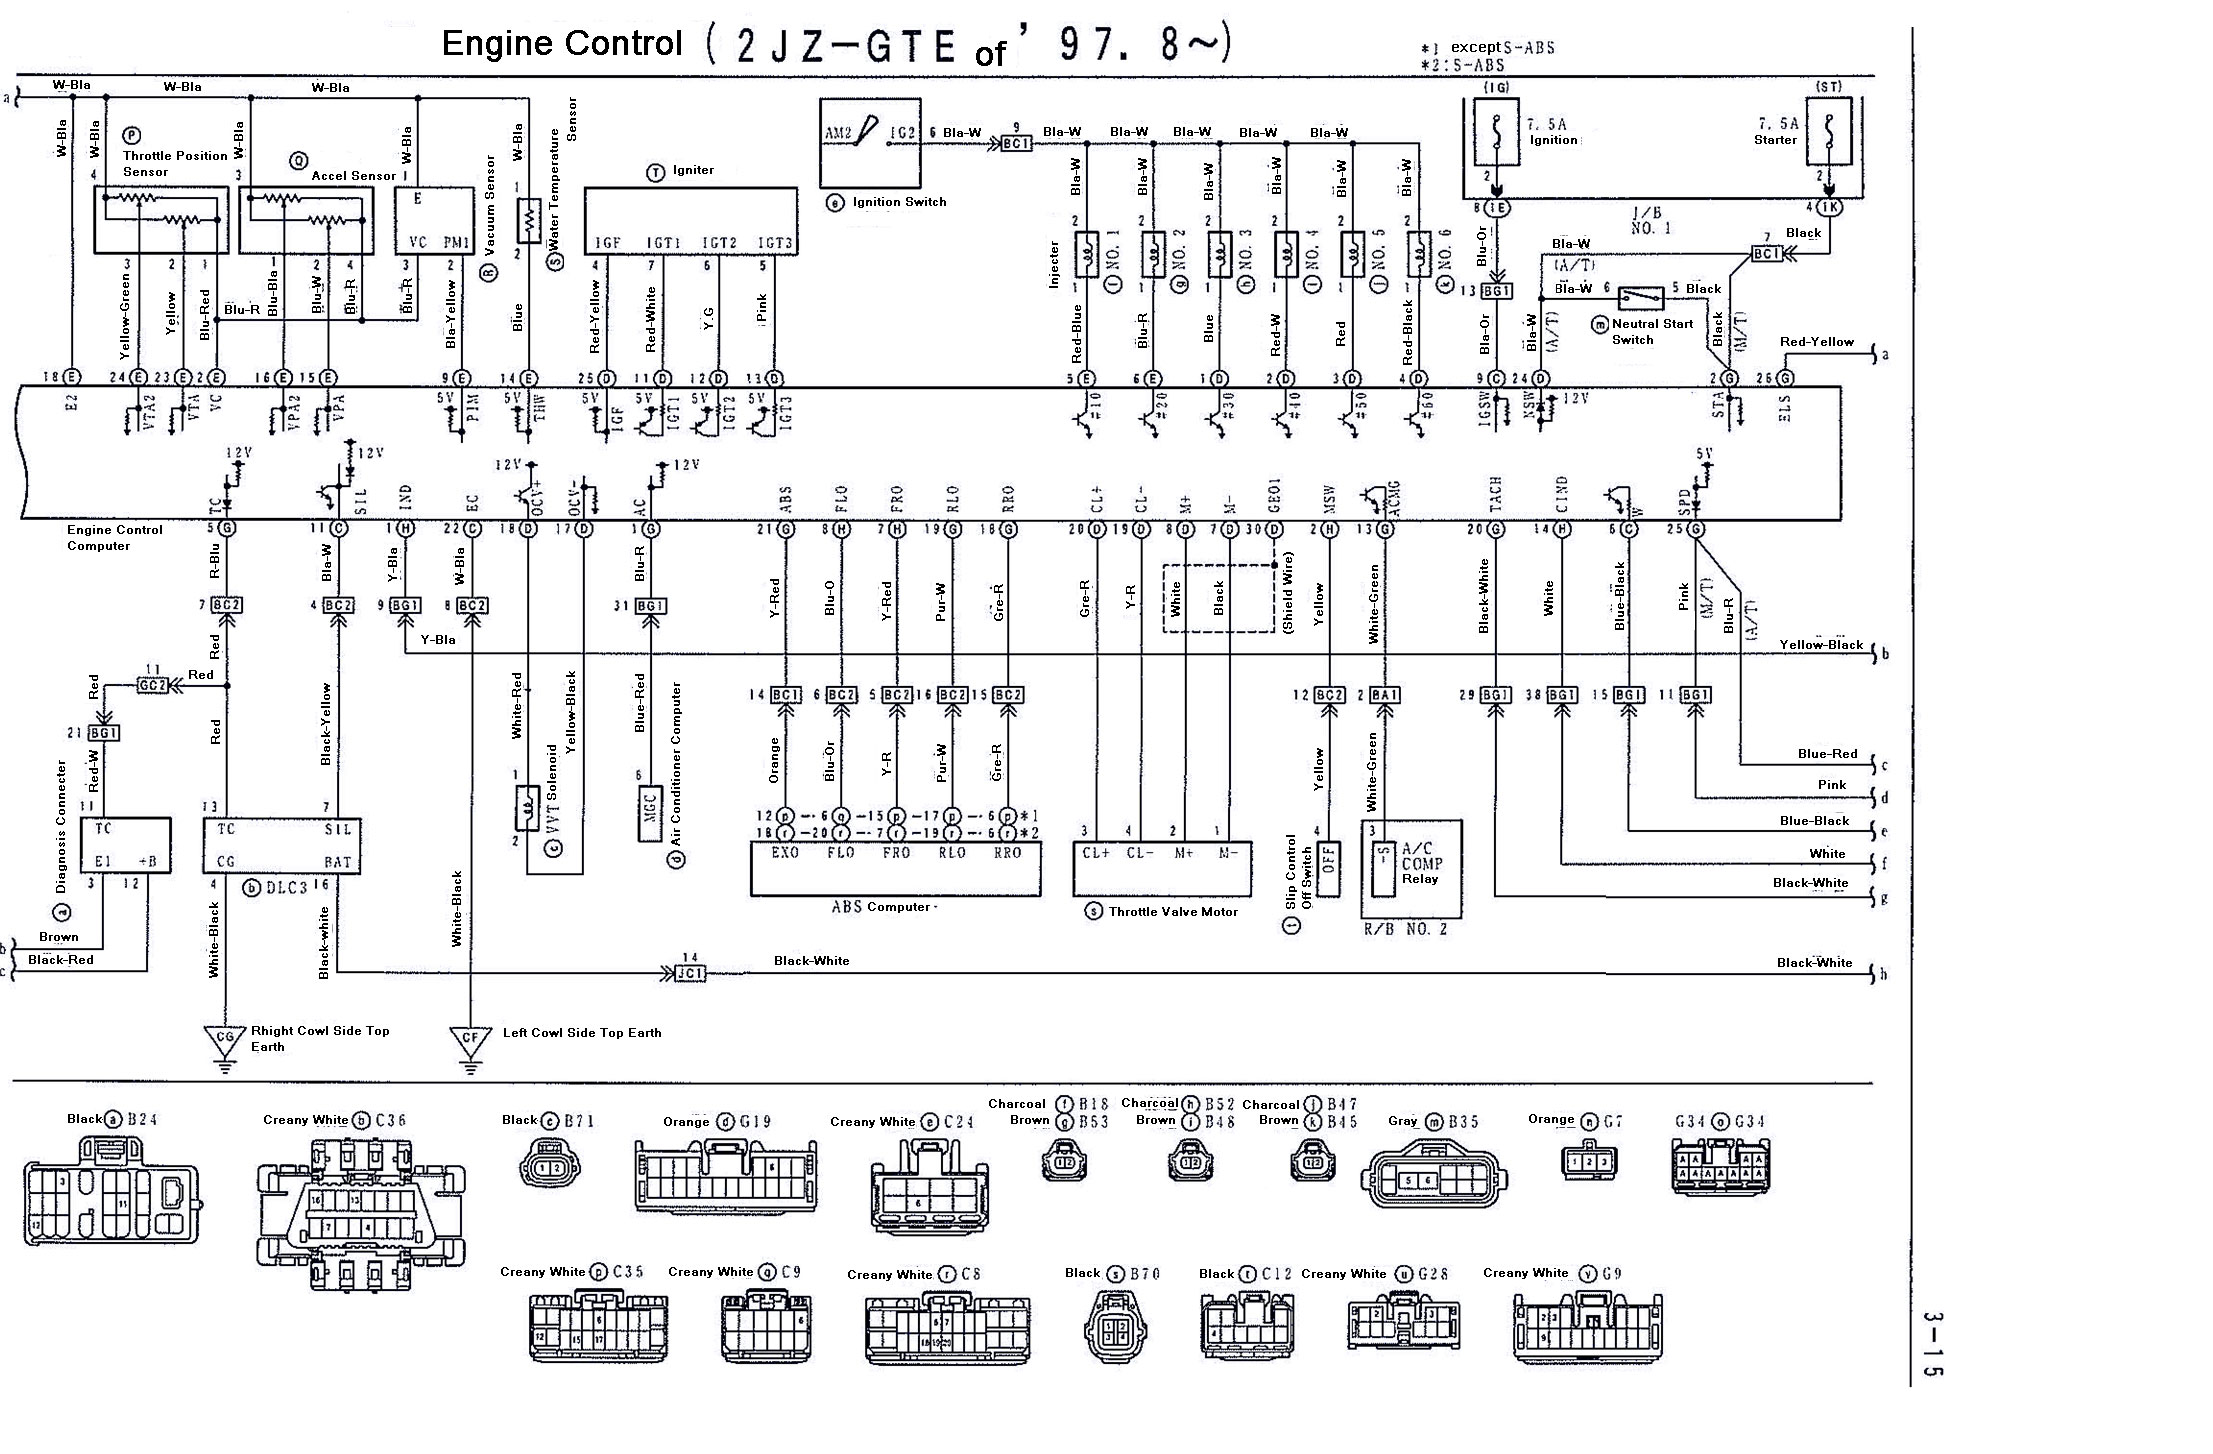 final3.15 supra 2jzgte vvti wiring diagrams (97 8 02) 2jzgarage mk3 supra wiring diagram at panicattacktreatment.co